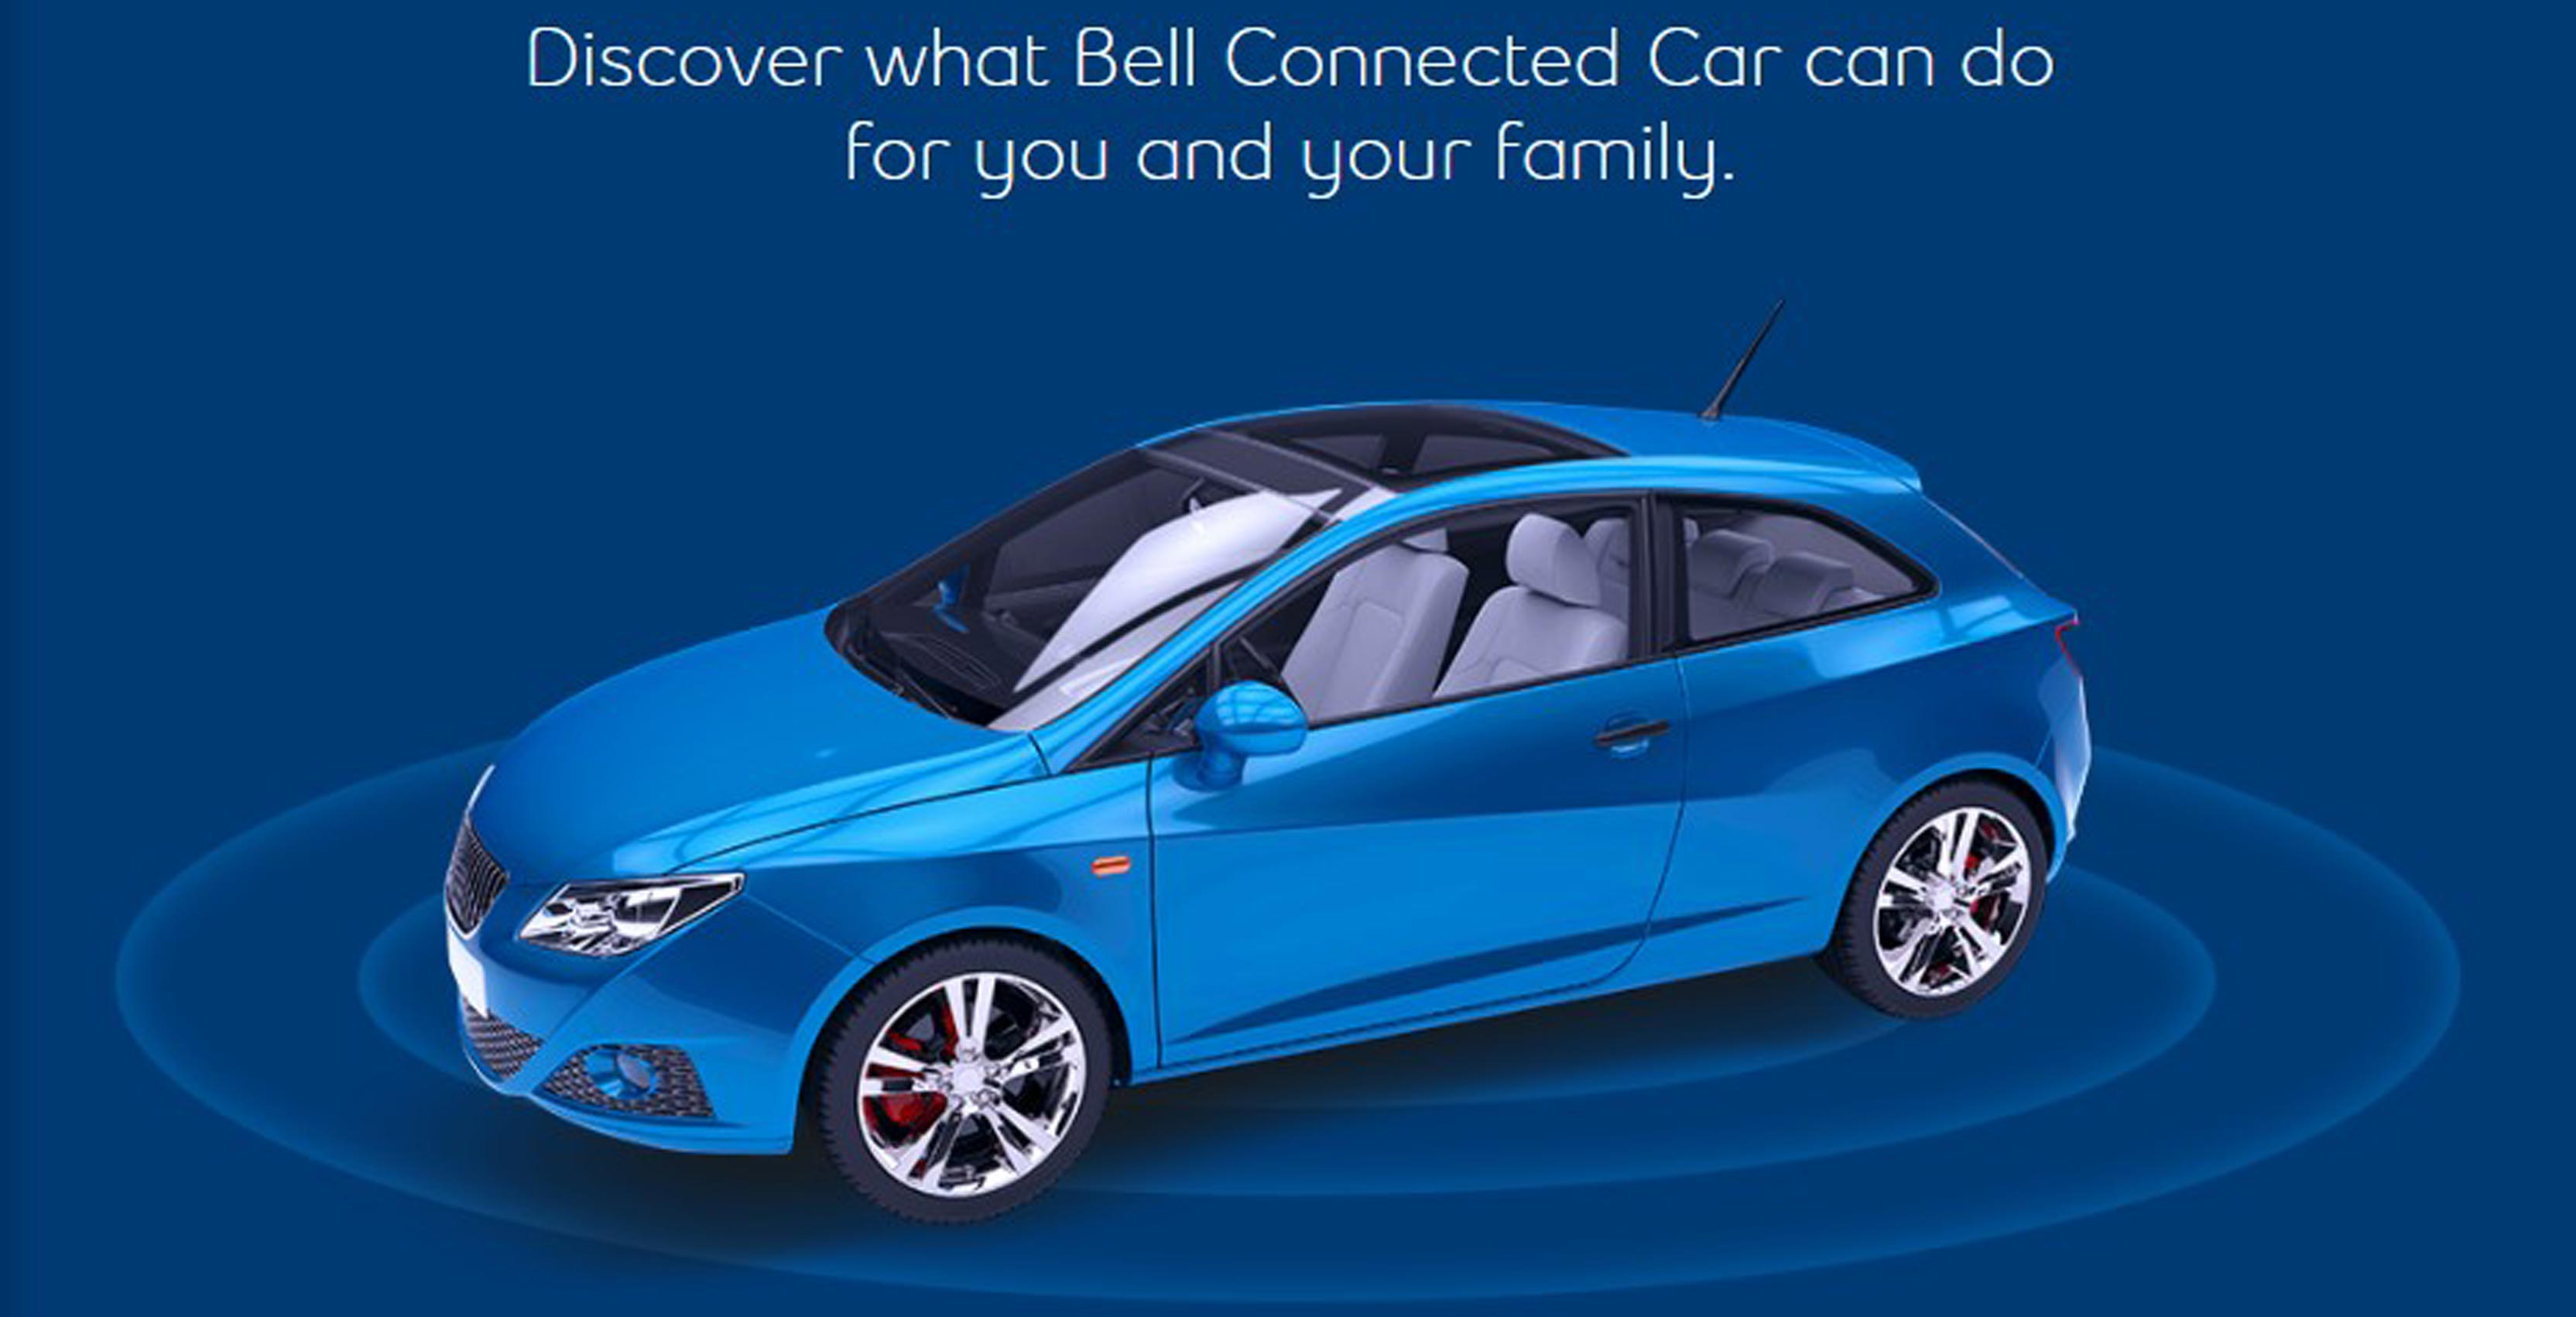 Bell's Connected Car device is now available